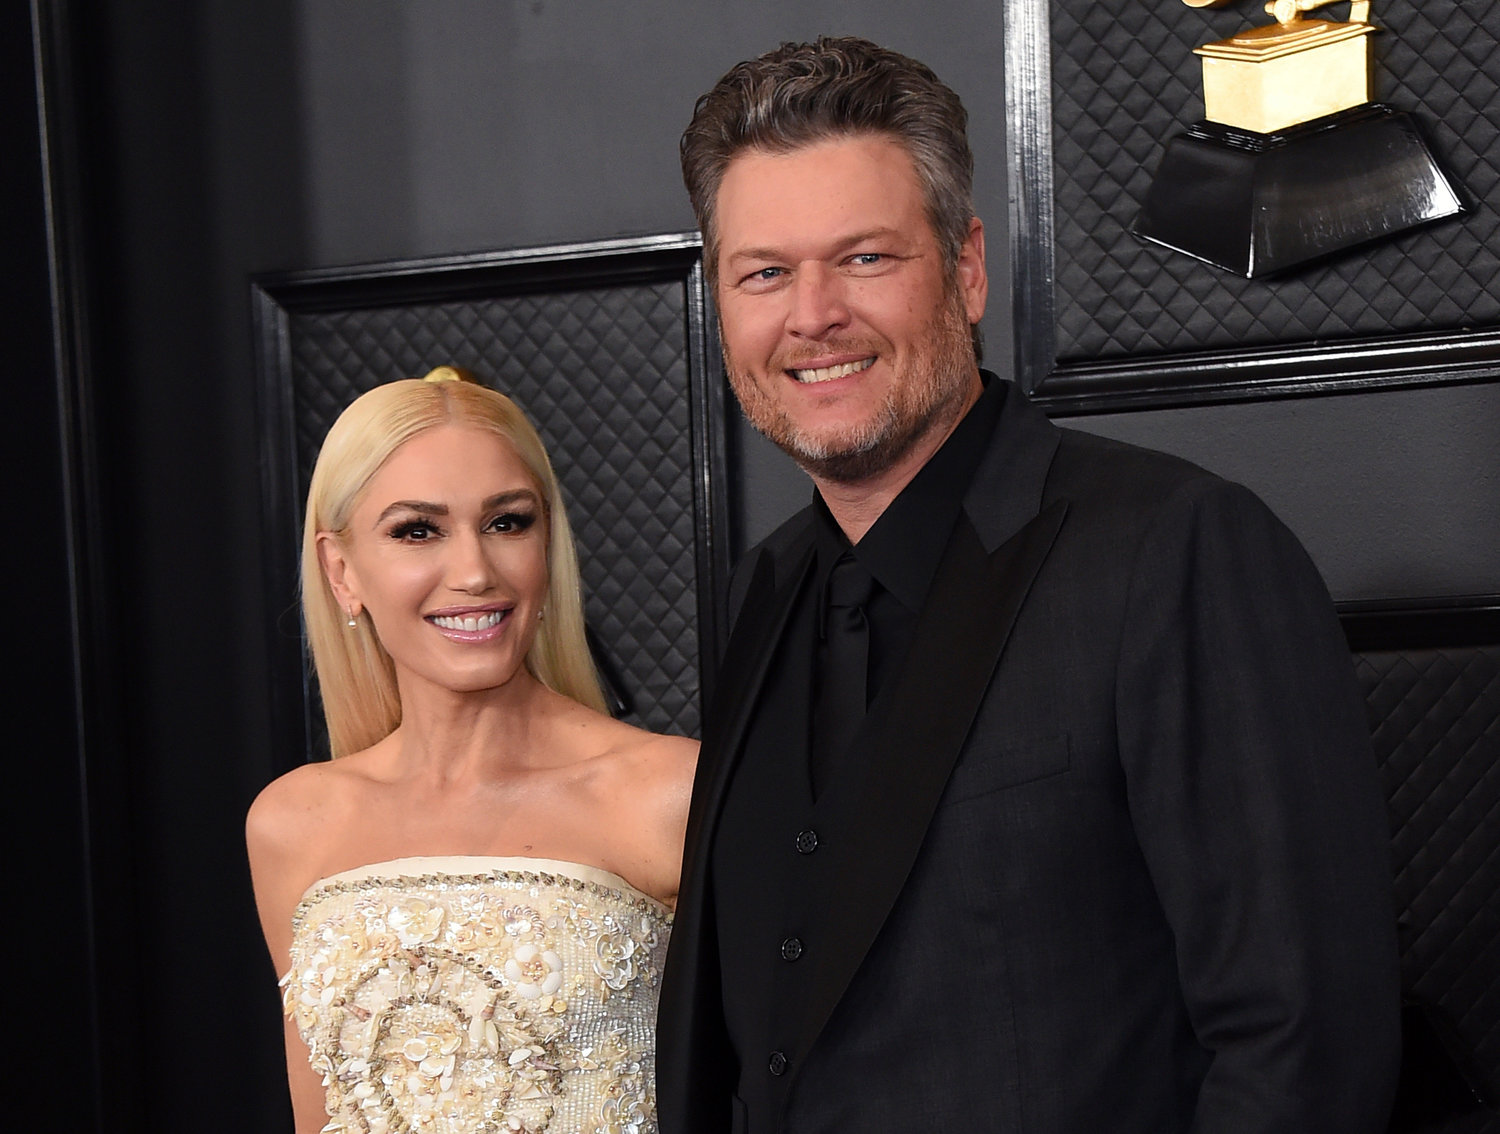 'Voice' co-stars Blake Shelton, Gwen Stefani engaged | Daily Mountain Eagle